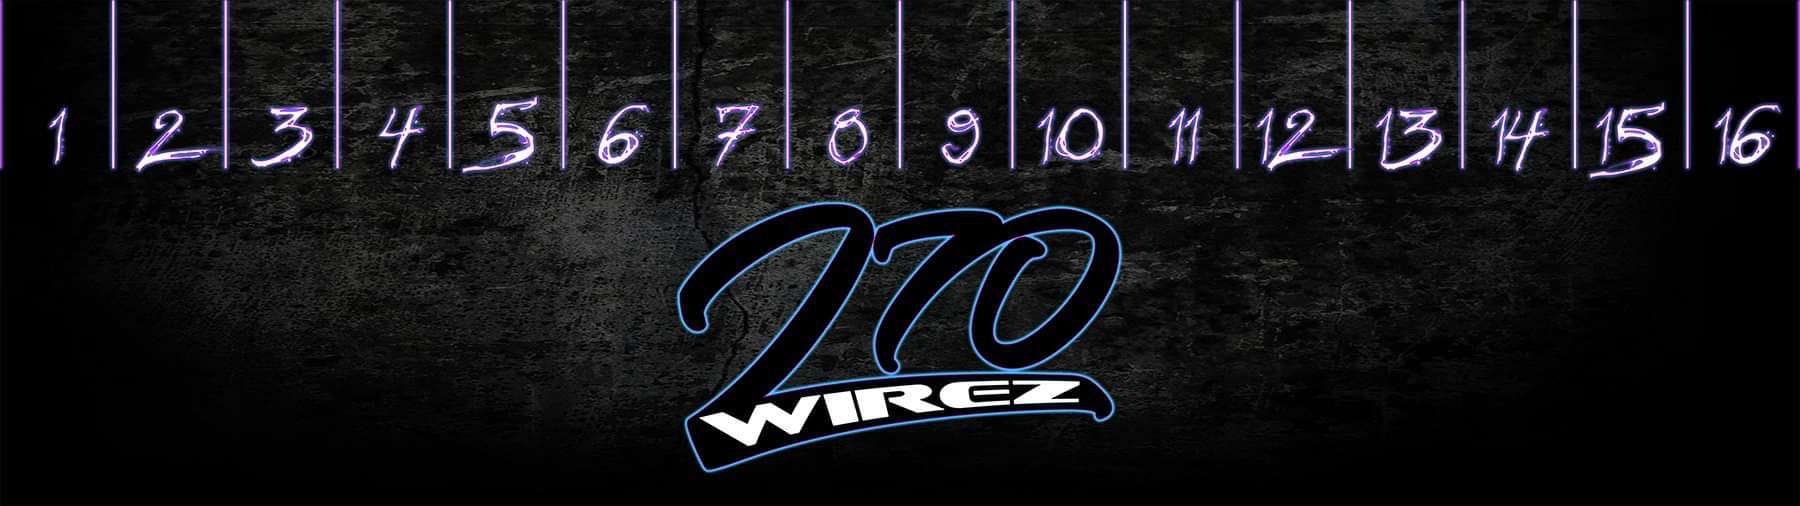 270 Wirez Comp Banner